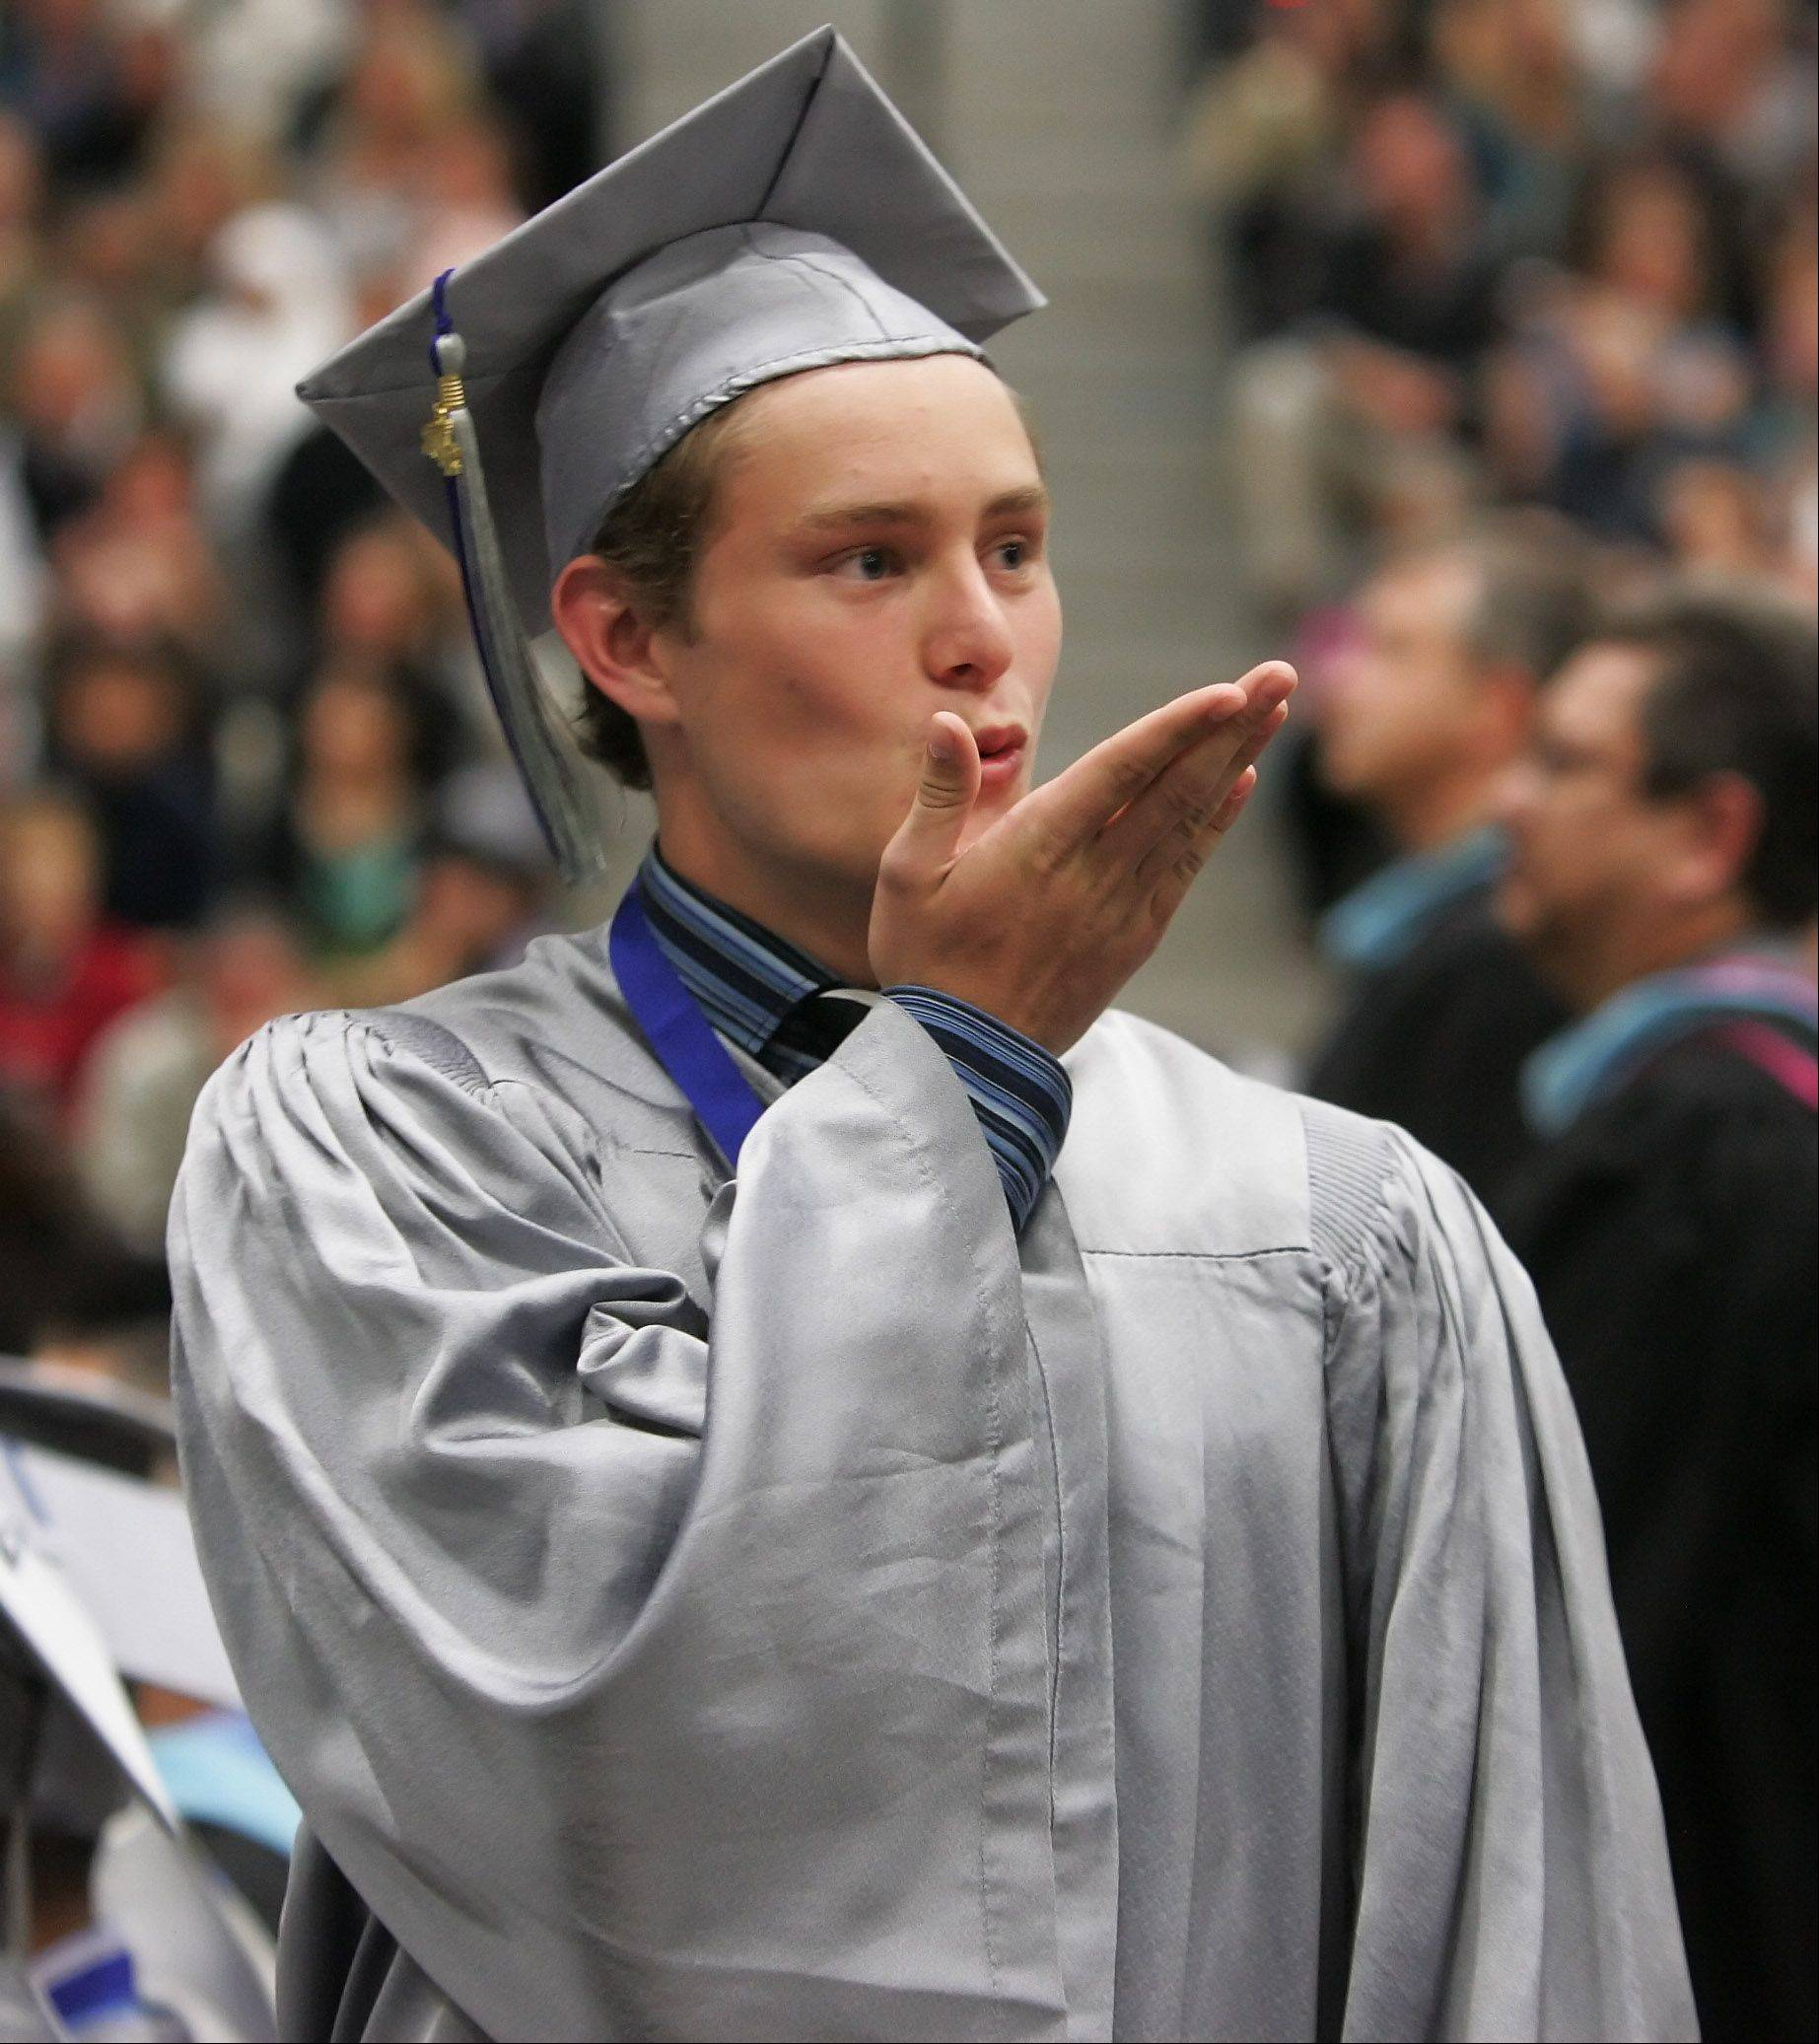 Dylan Gatz blows a kiss after receiving his diploma during the 11th commencement ceremony at Vernon Hills High School Thursday at the school.